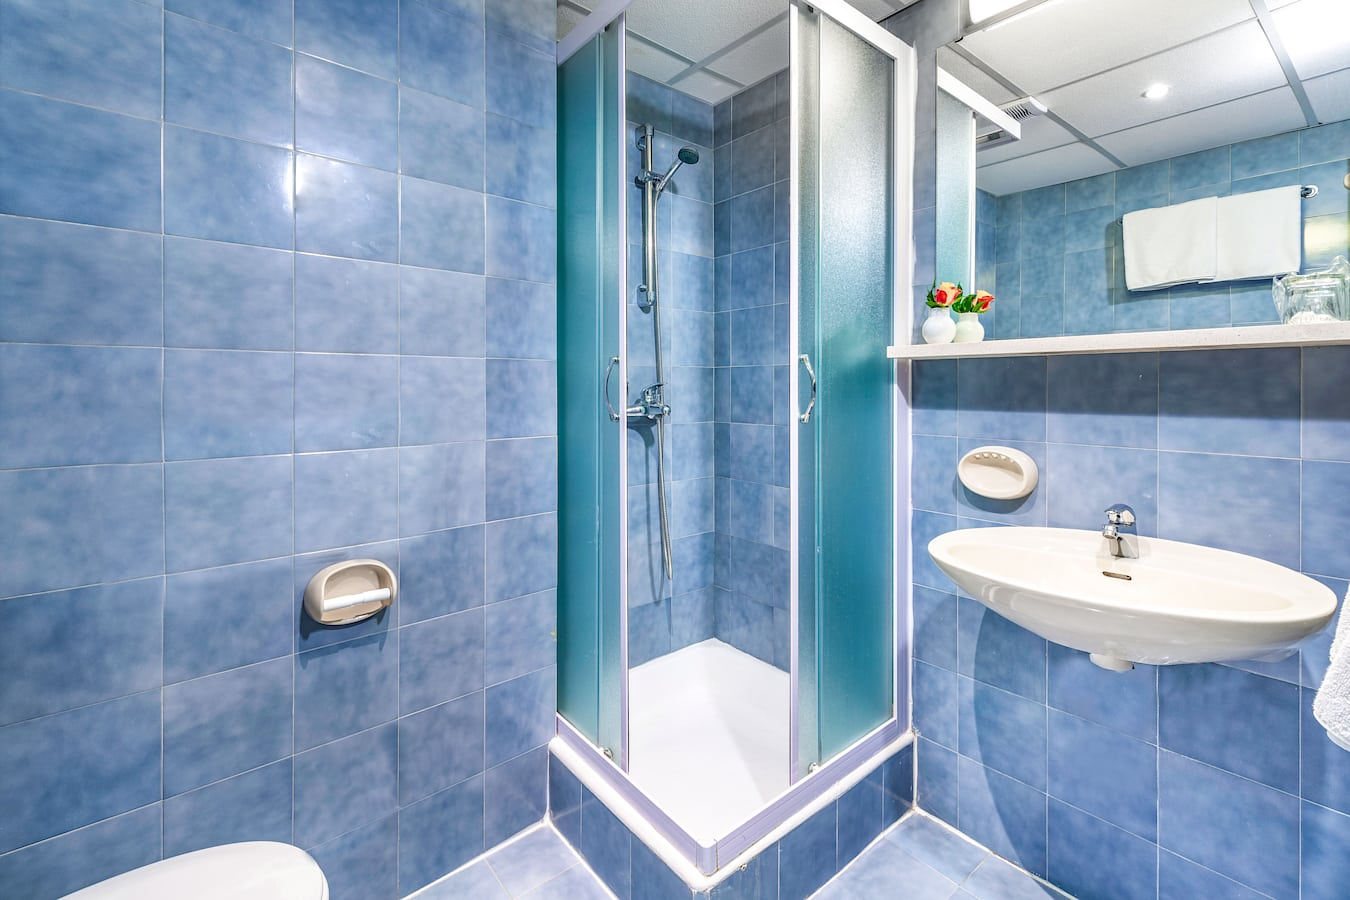 adriatic-hotel-dubrovnik-bathroom-shower.jpg